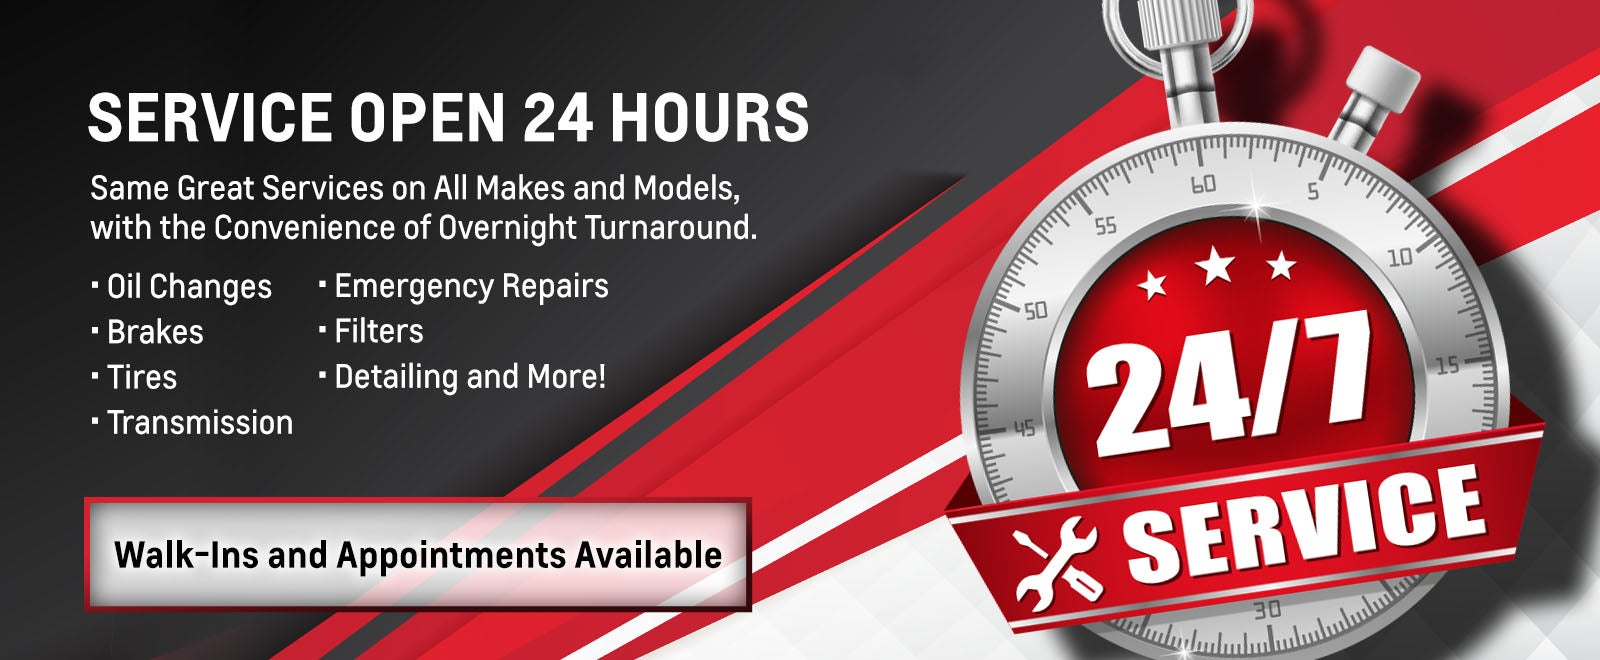 24 hour auto repair and service in highland mi feldman chevrolet 24 hour auto repair and service in